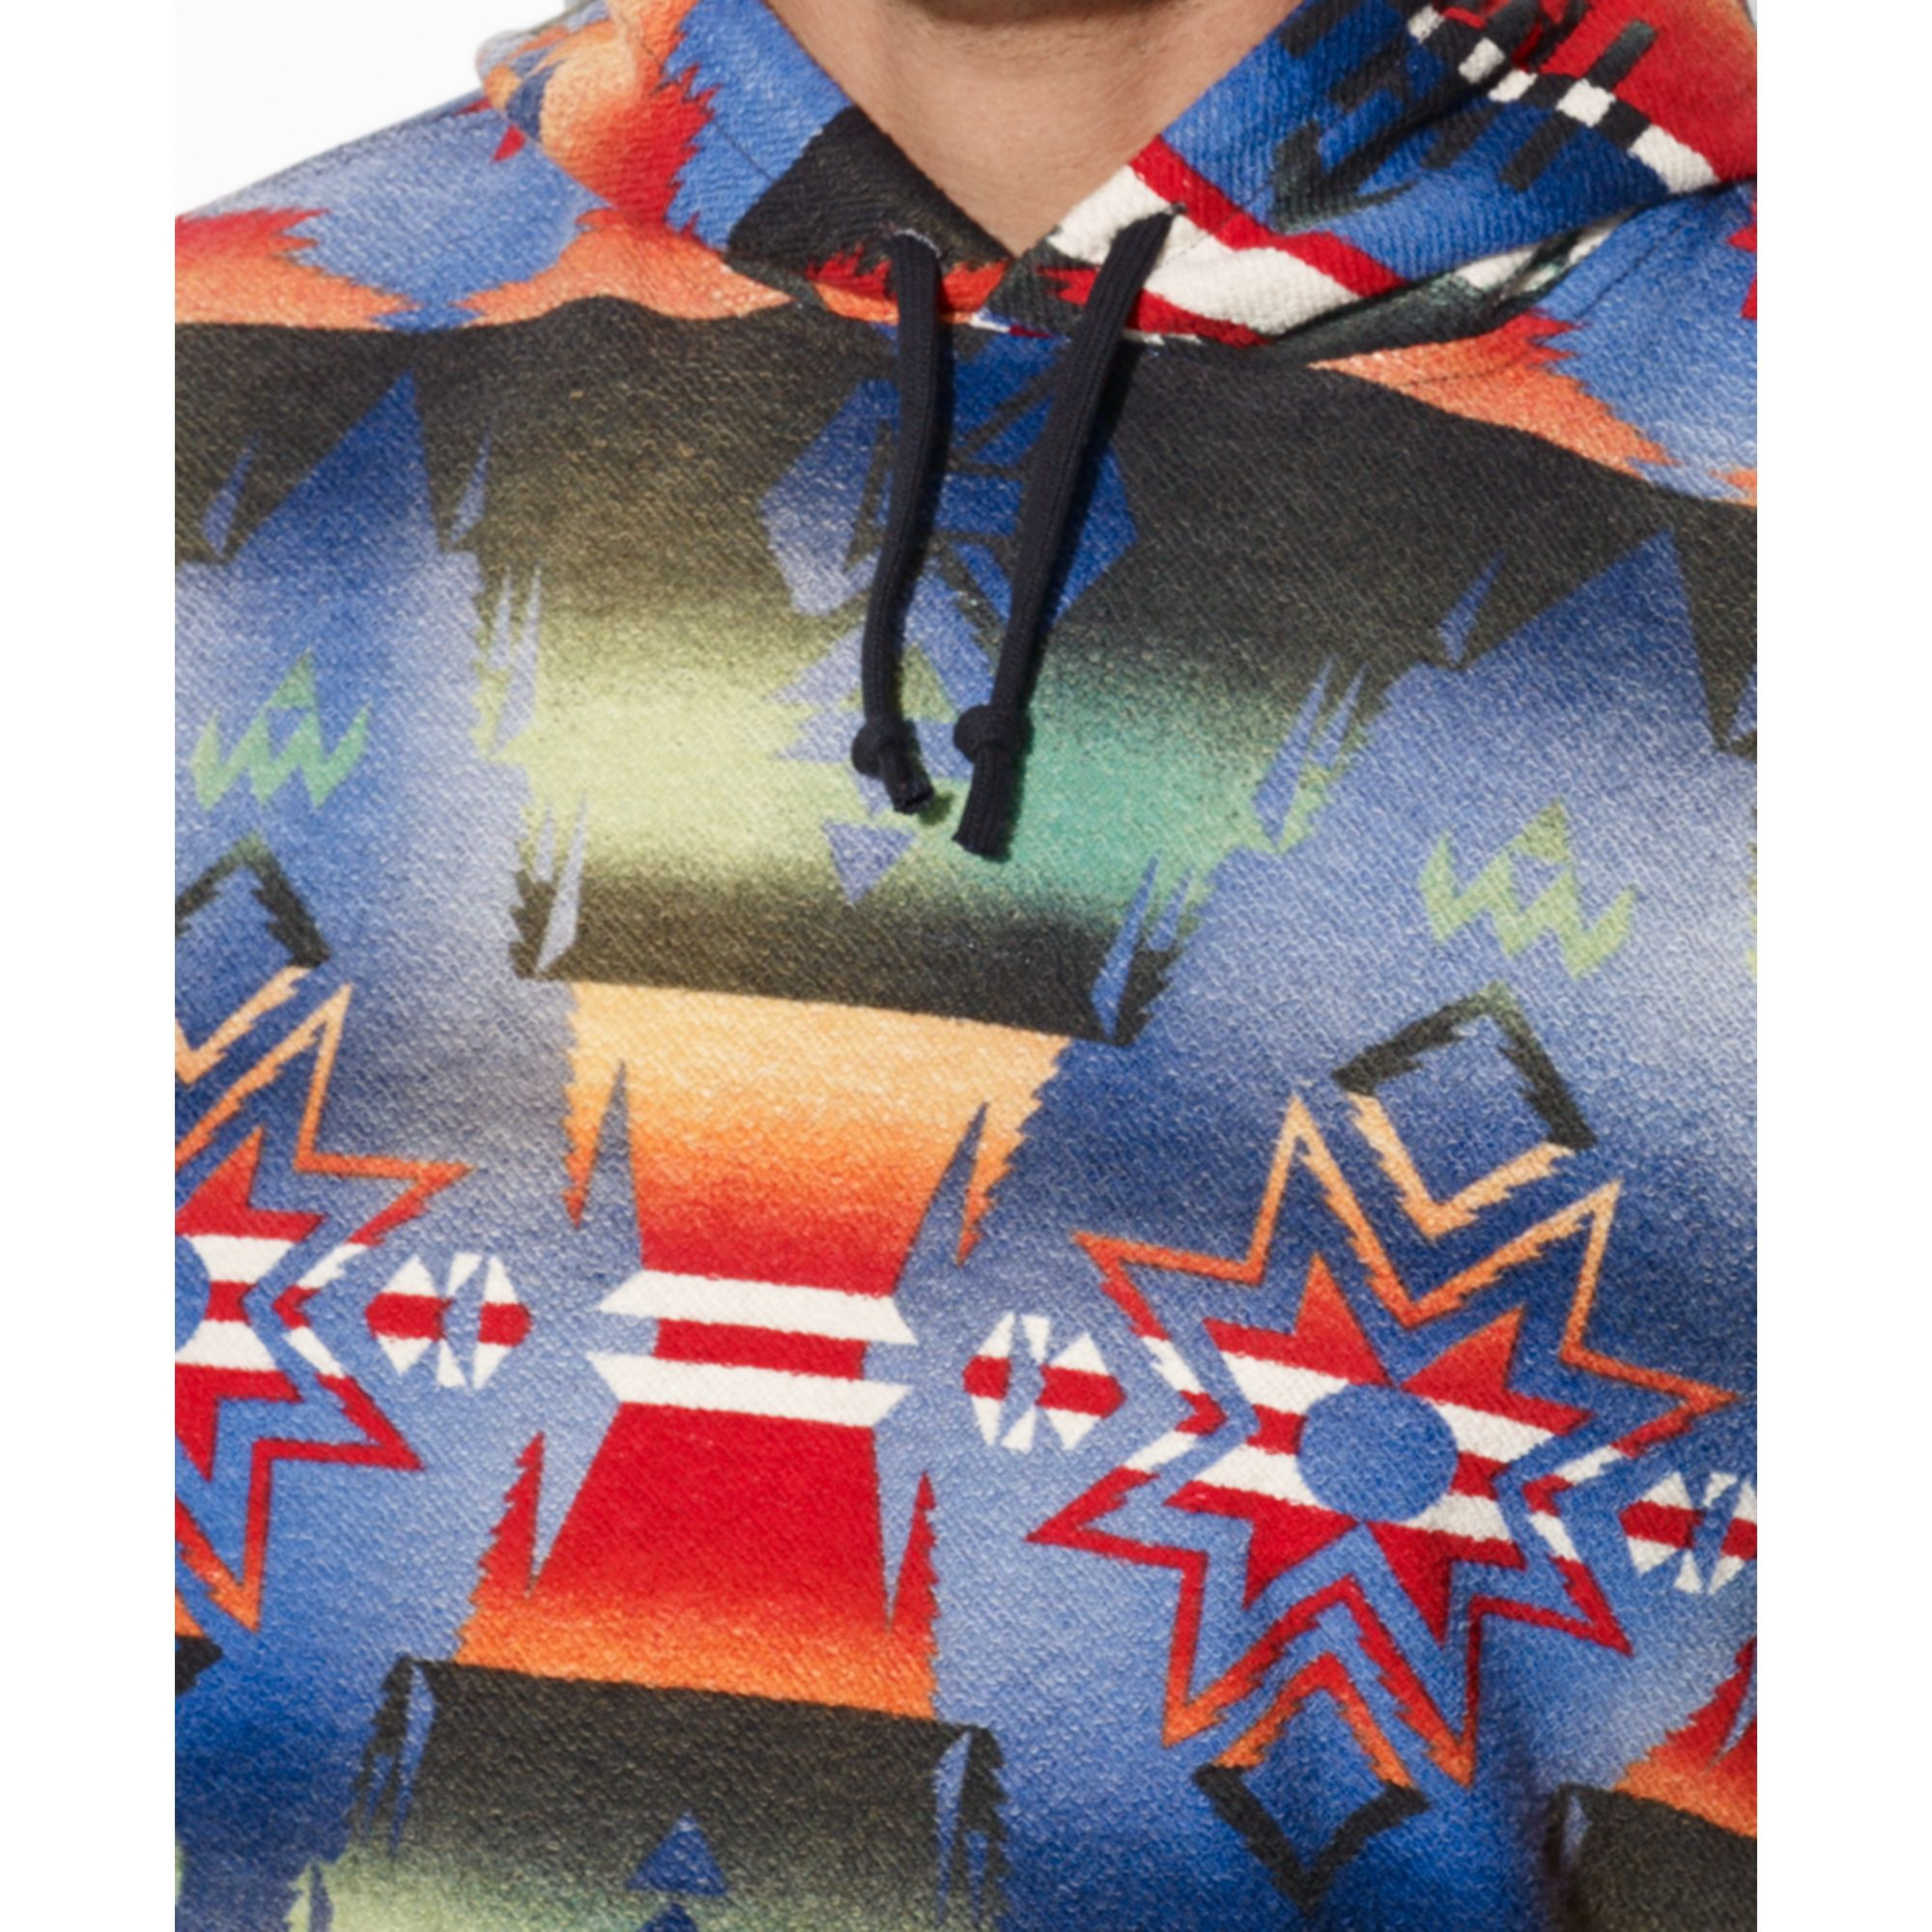 8242d04012e1 ... spain lyst ralph lauren polo patterned french terry pullover hoodie in  3706c 21417